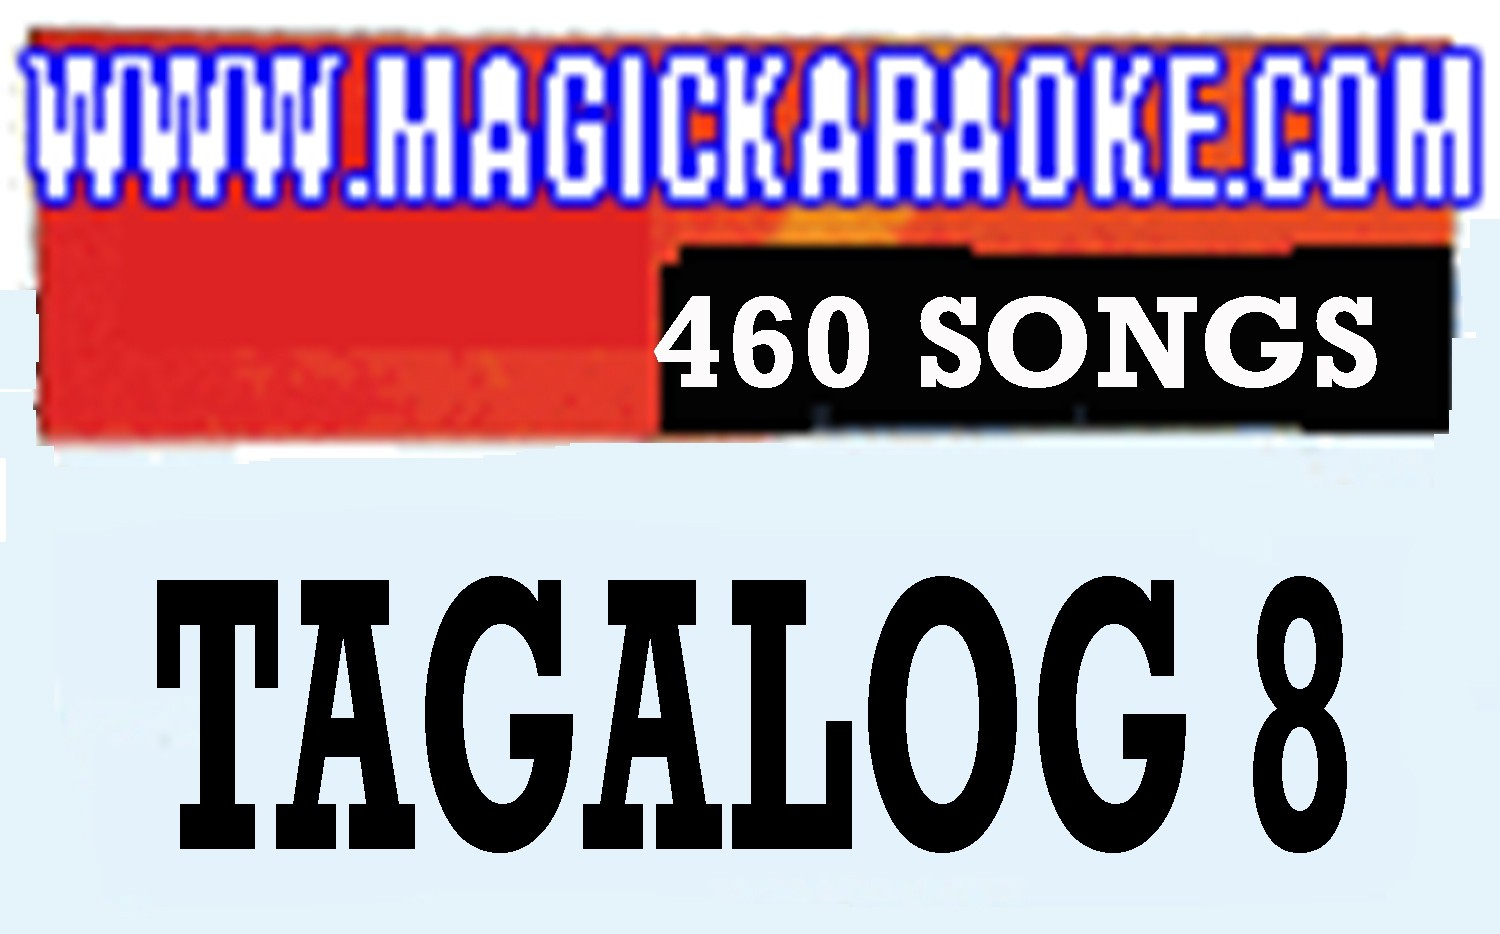 Magic Sing Tagalog 8 - Make an Offer and $ave More